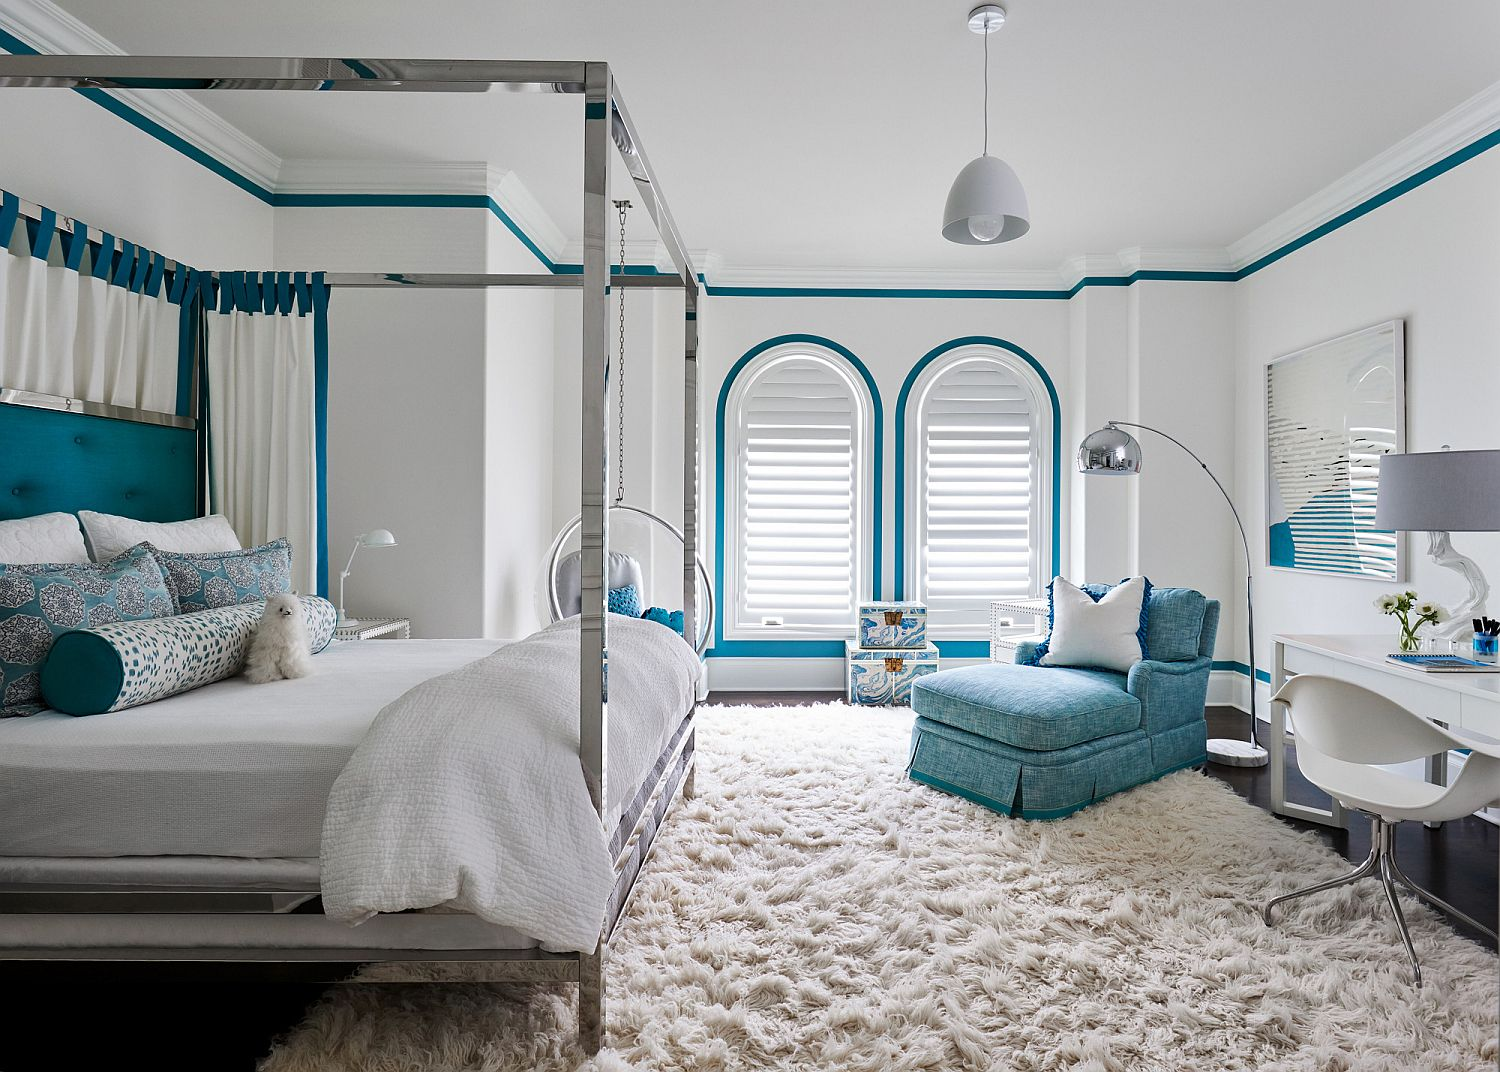 Using bright blue to accentuate features in the white Mediterranean style bedroom